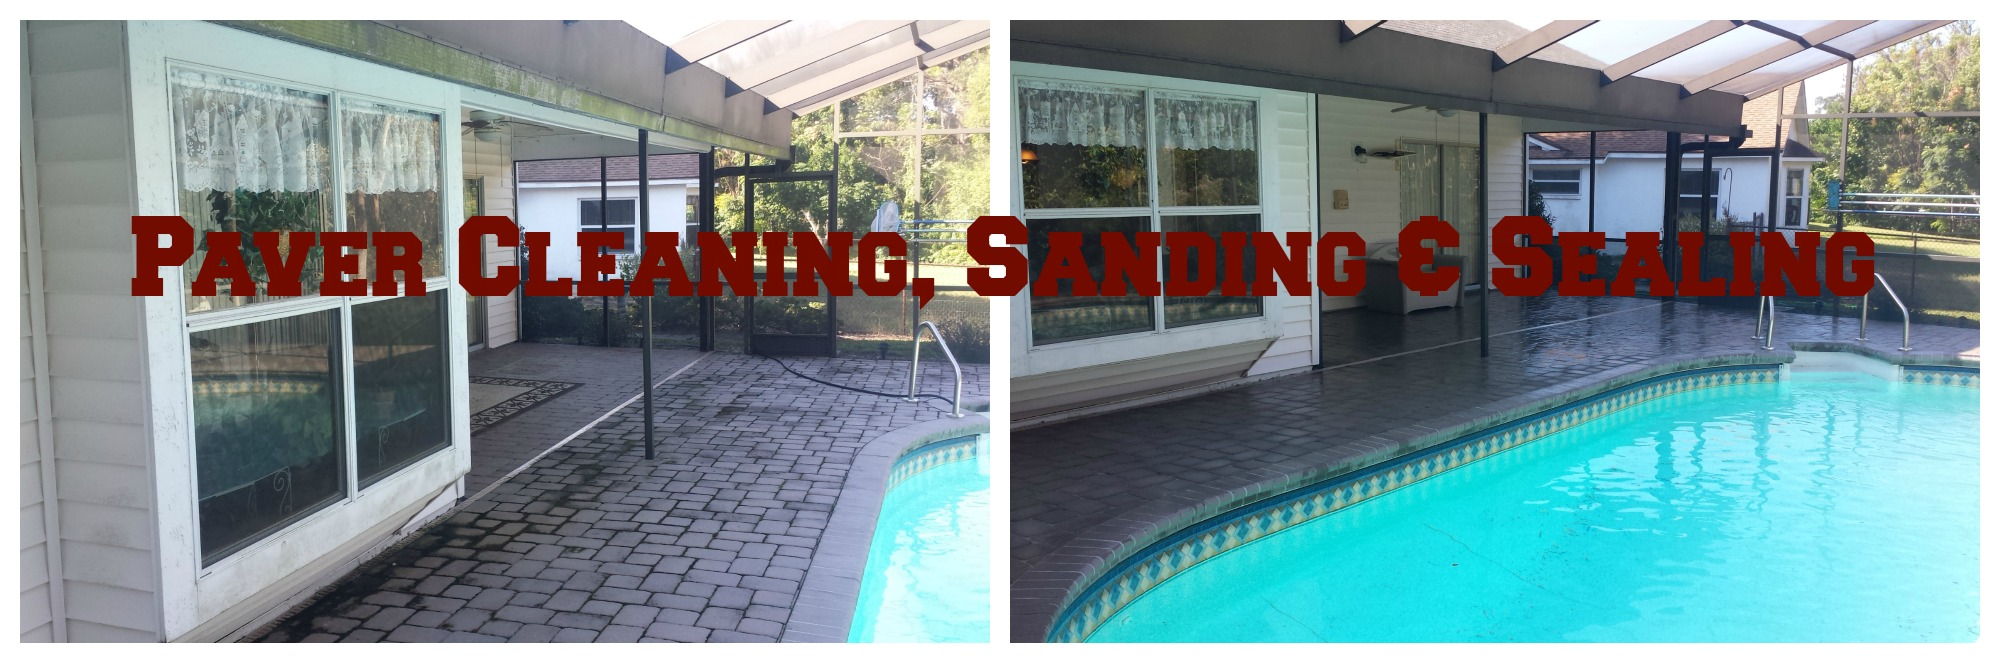 Brick Paver Cleaning sanding sealing